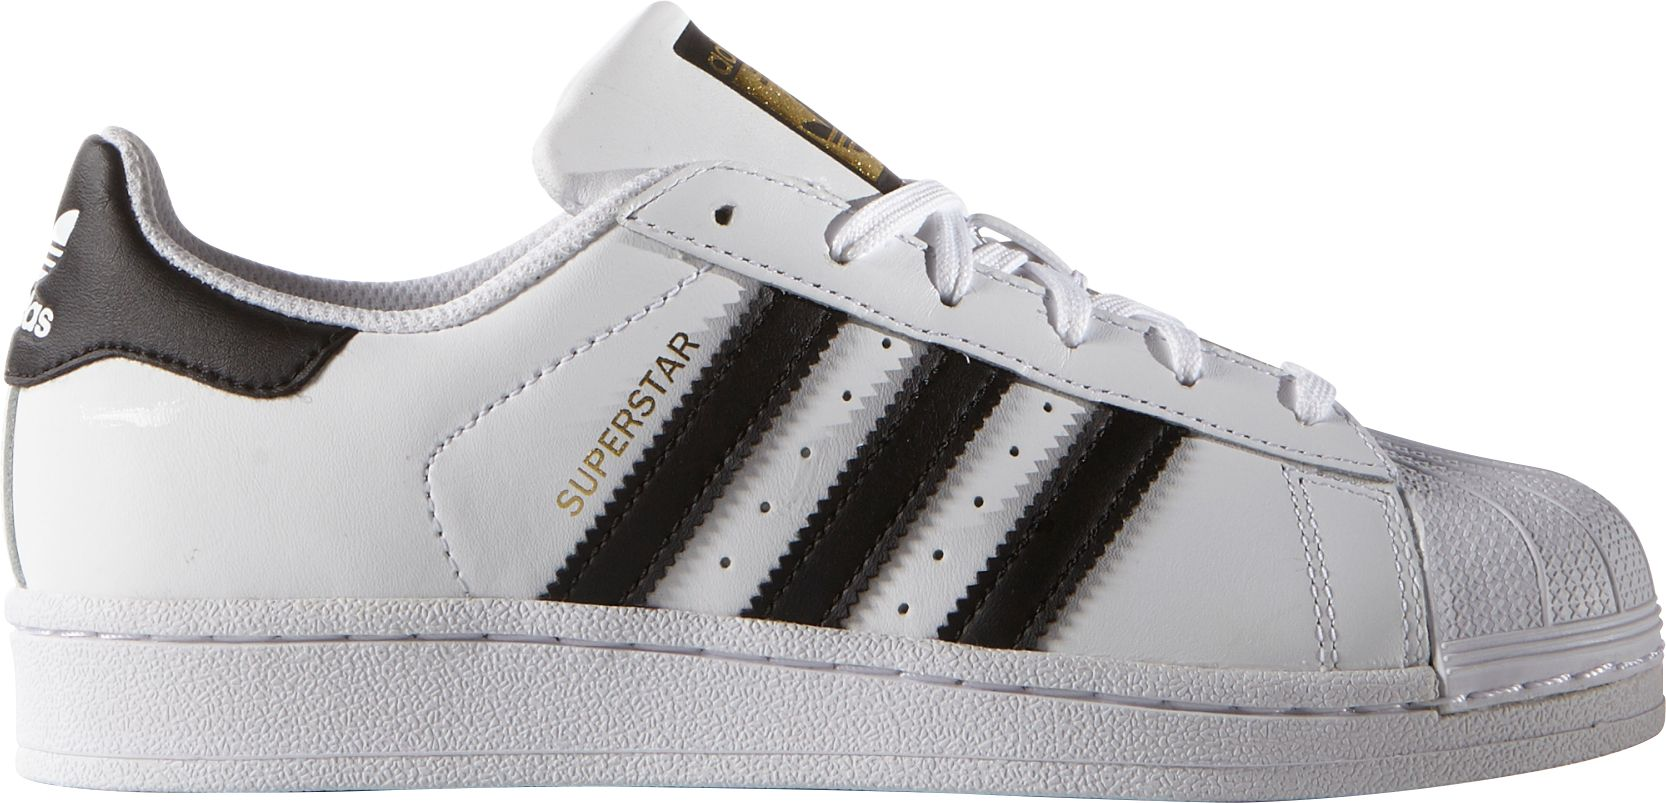 Cheap Adidas Superstar Men's Basketball Shoe Core Black / Gold Metallic